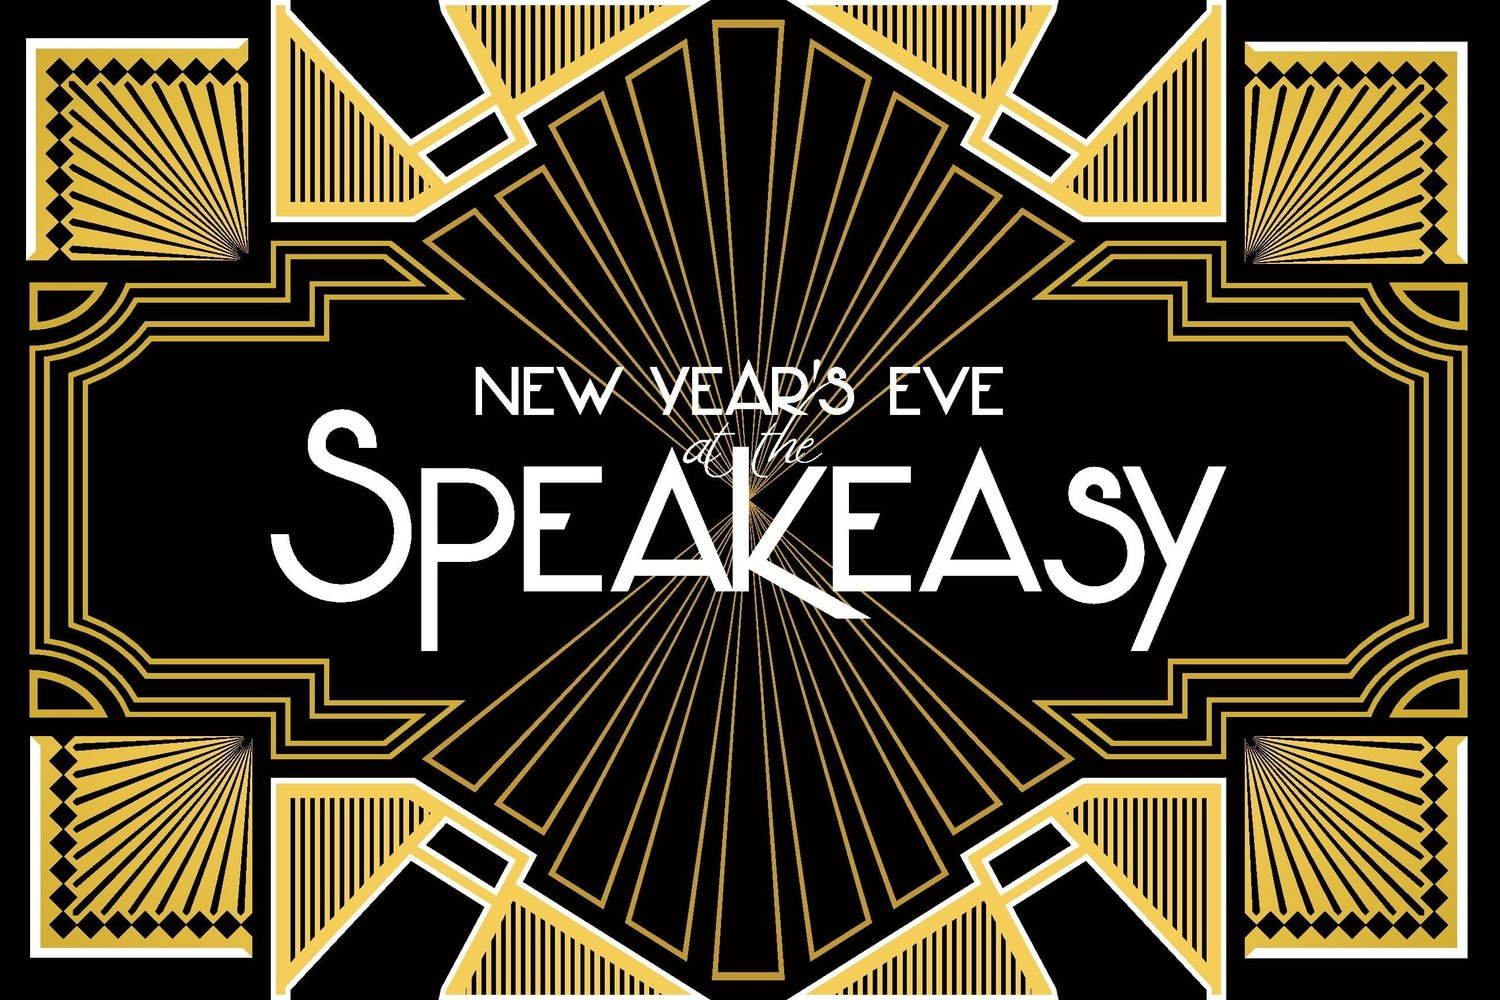 New Years Eve Party Events